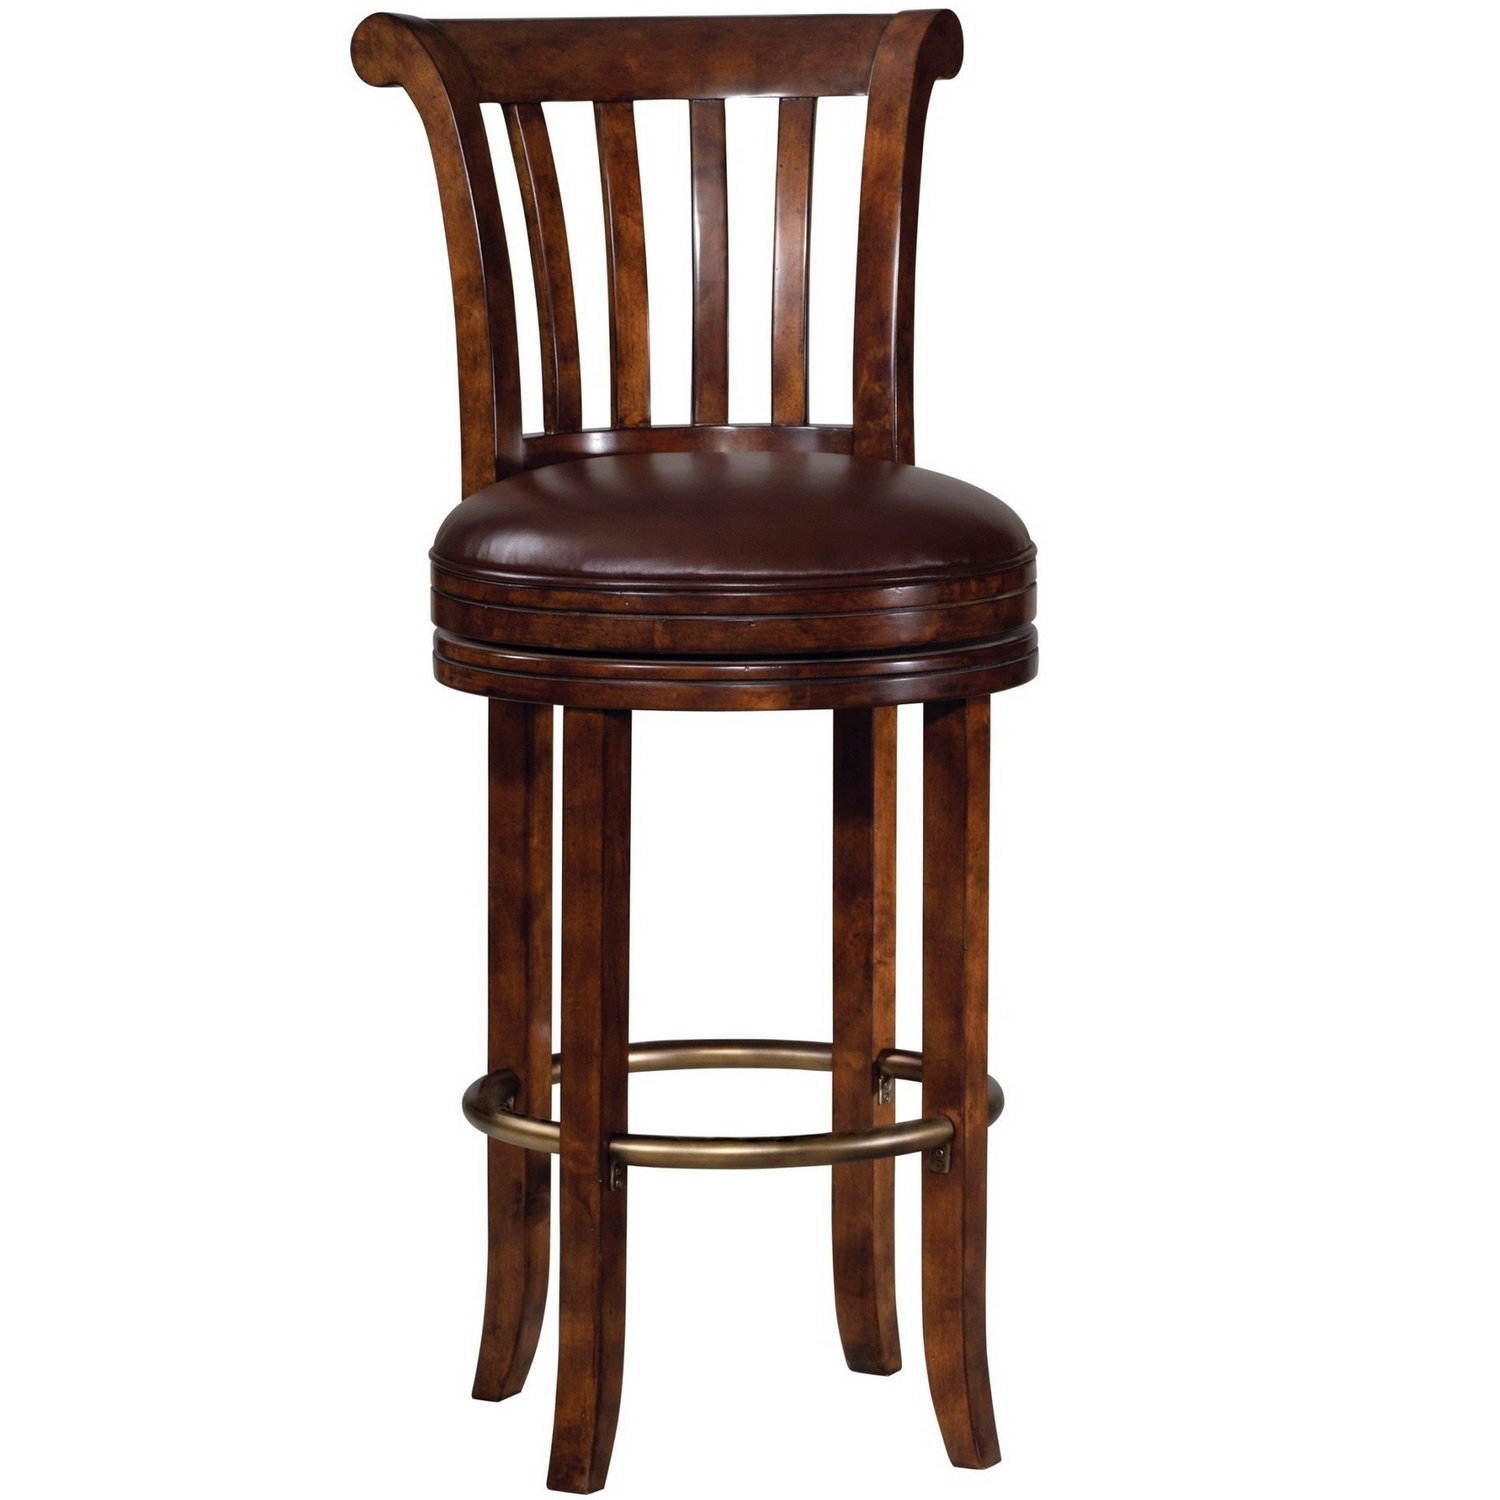 Барный стул Howard Miller Ithaca Bar Stool (арт. 697-000)